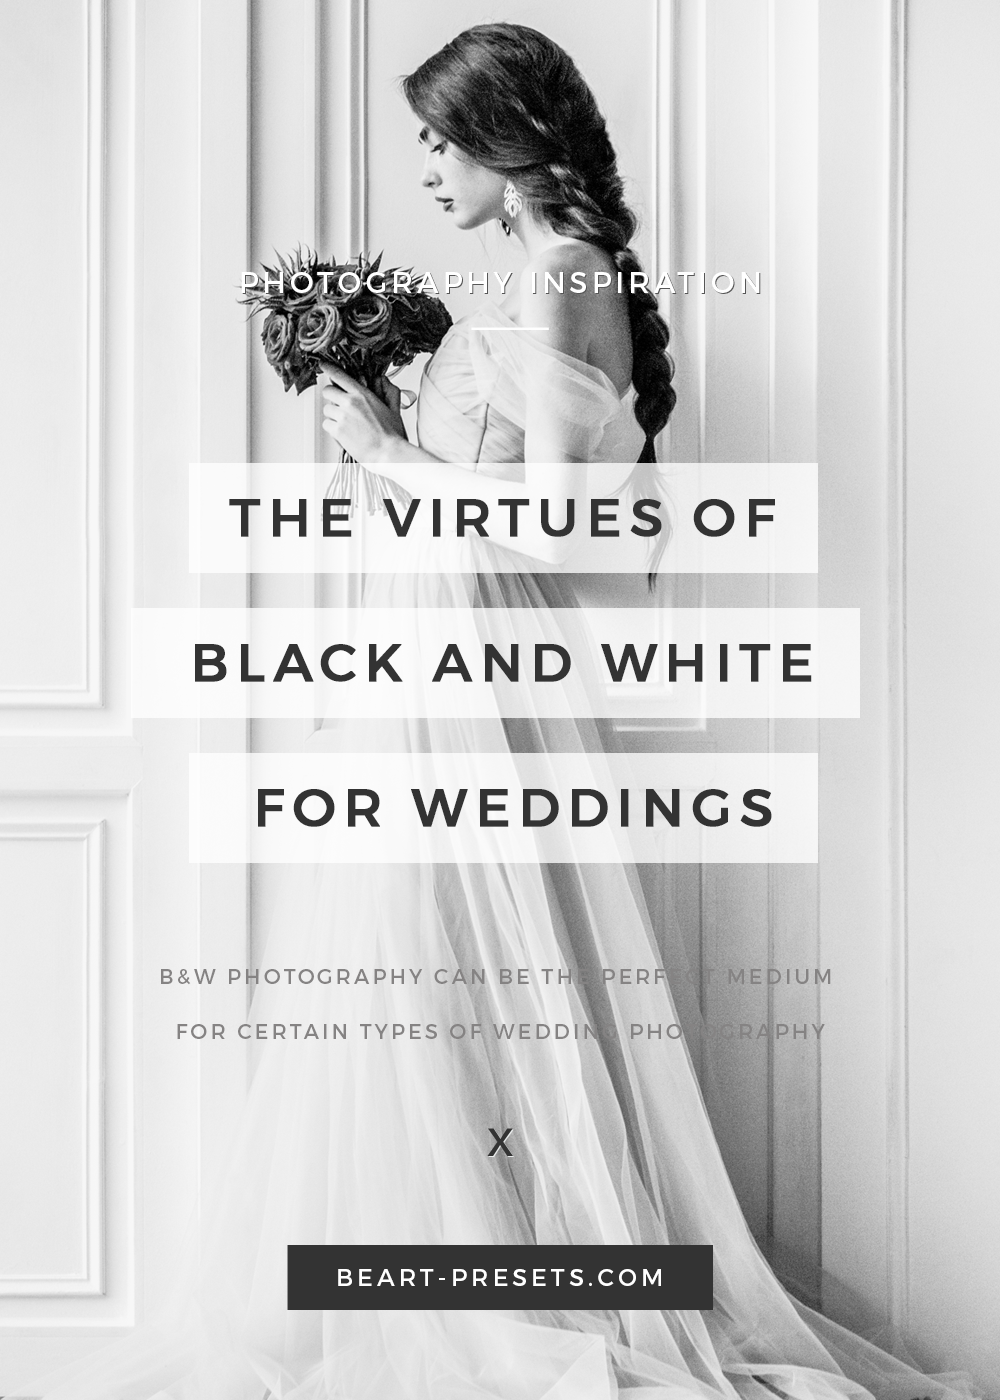 THE VIRTUES OF BLACK AND WHITE FOR WEDDINGS